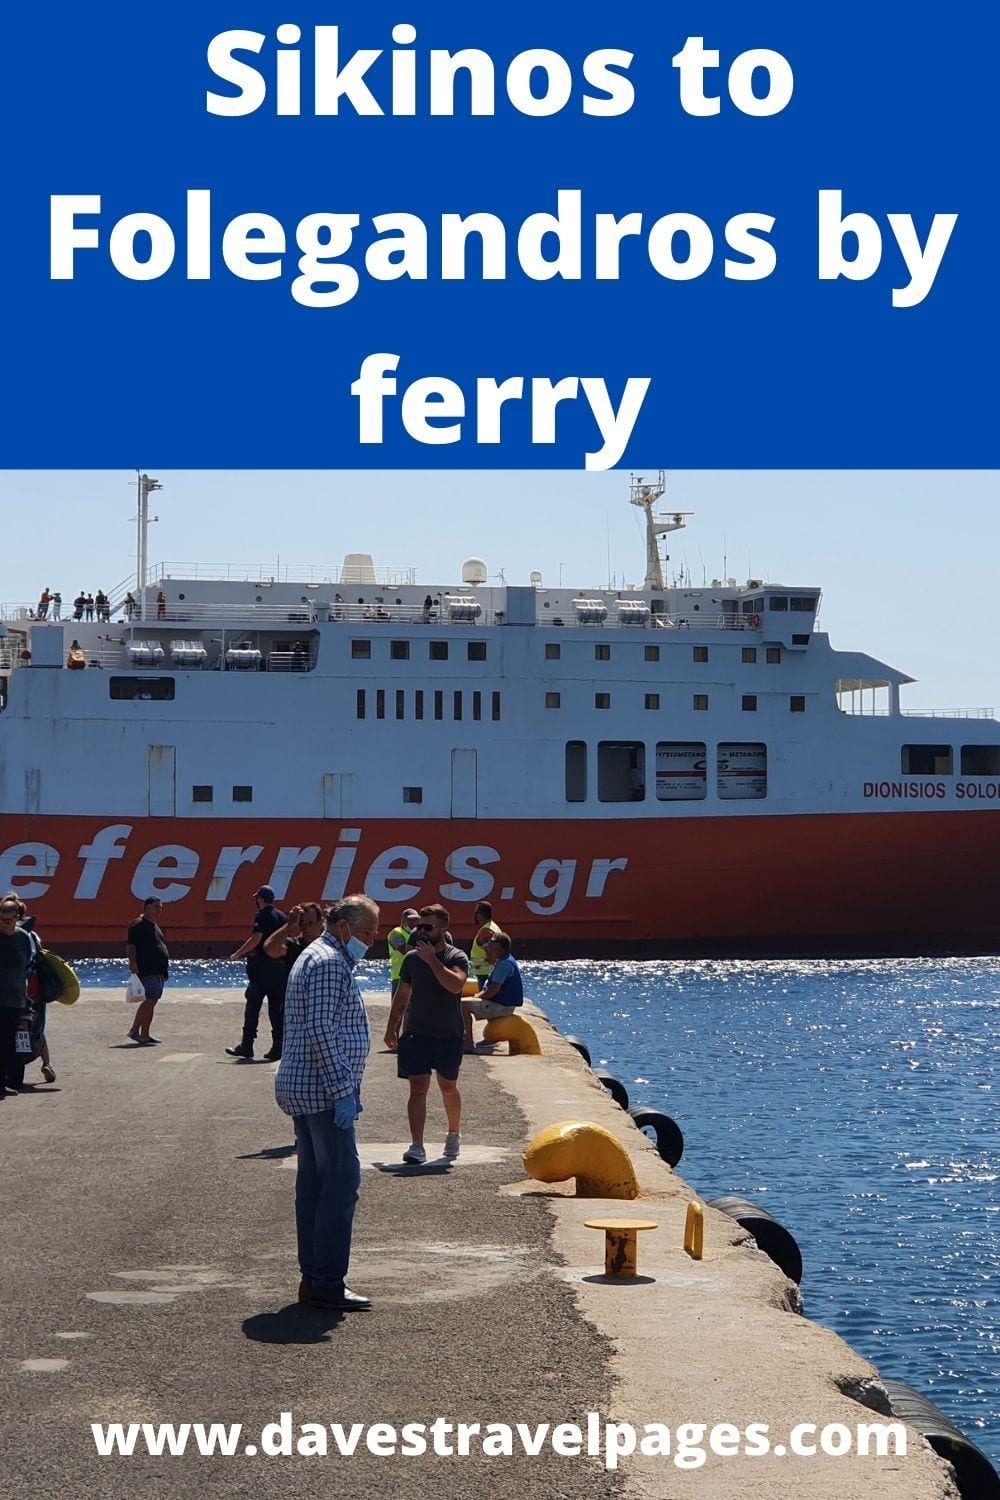 Sikinos to Folegandros ferry guide